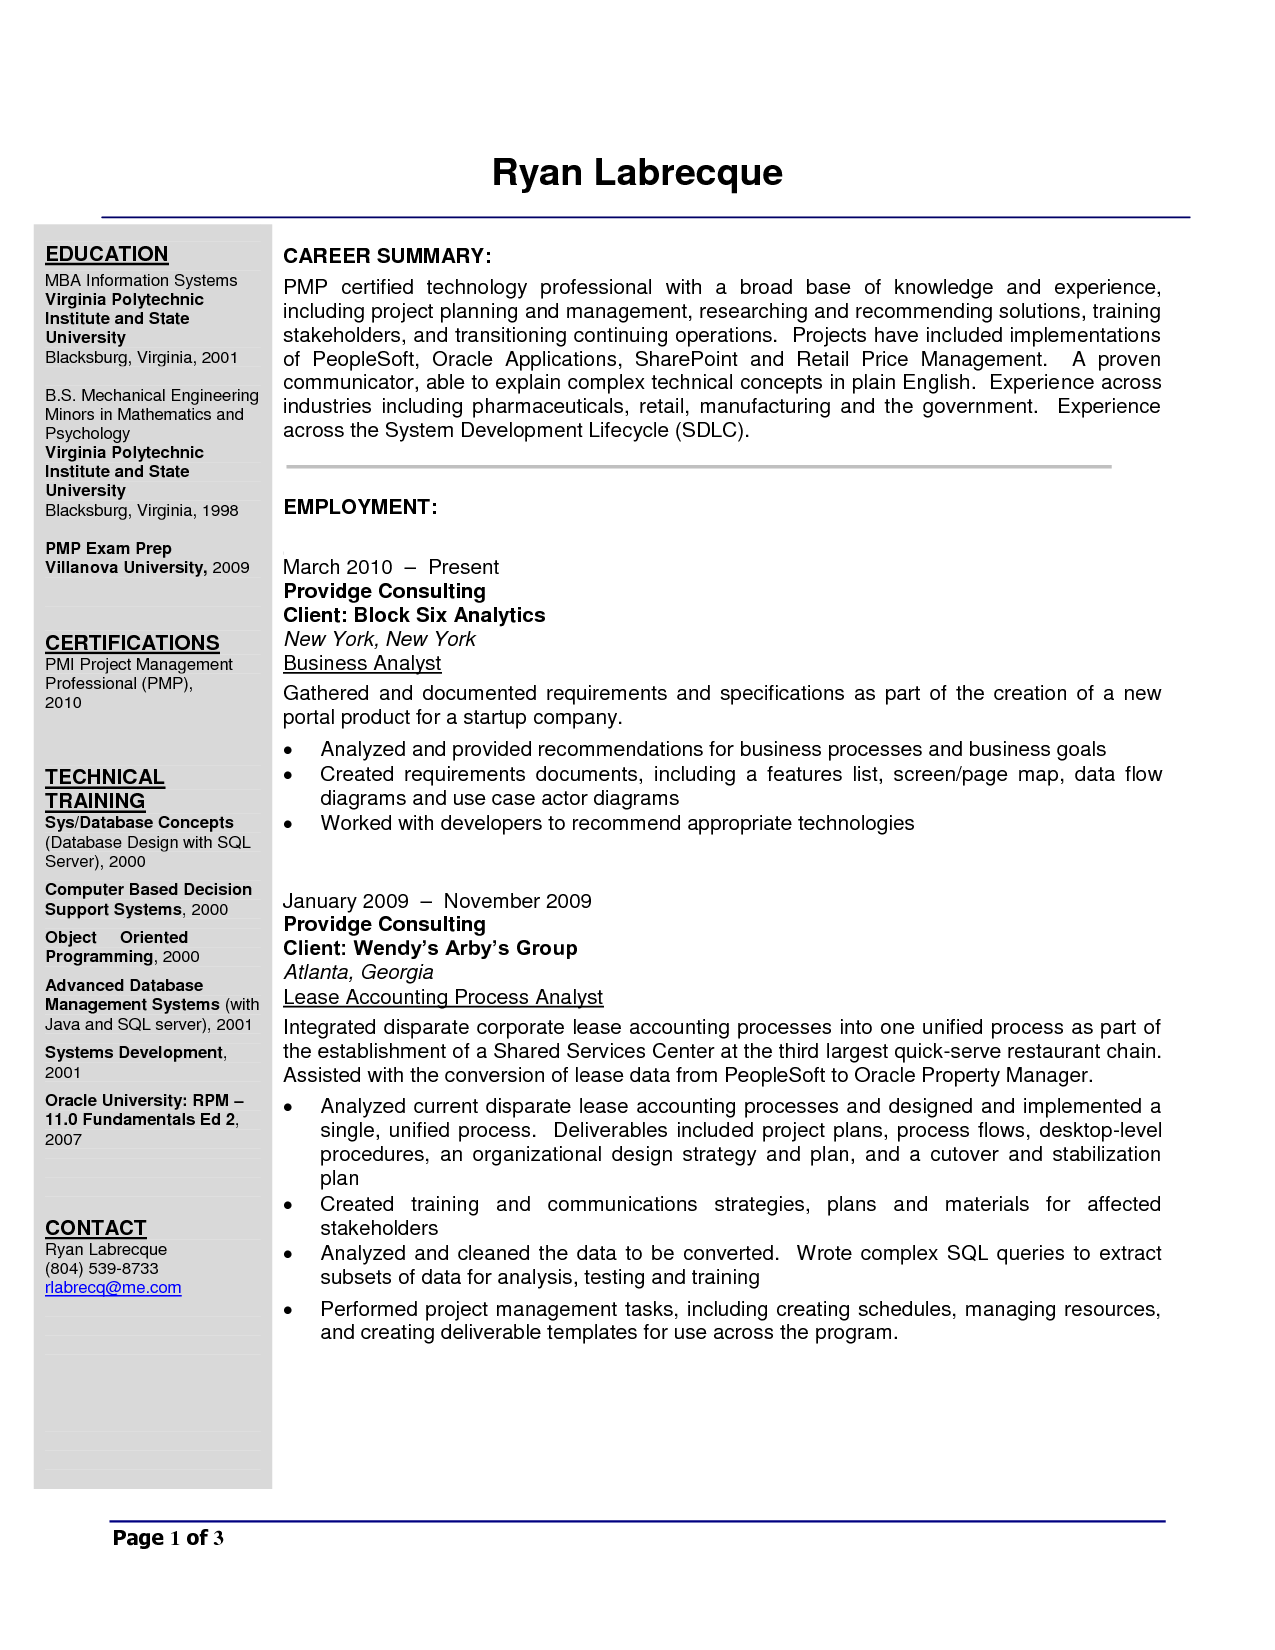 business analyst resume business analyst resume templates business analyst resume sample doc by ryan labrecque - Sample Of Business Analyst Resume